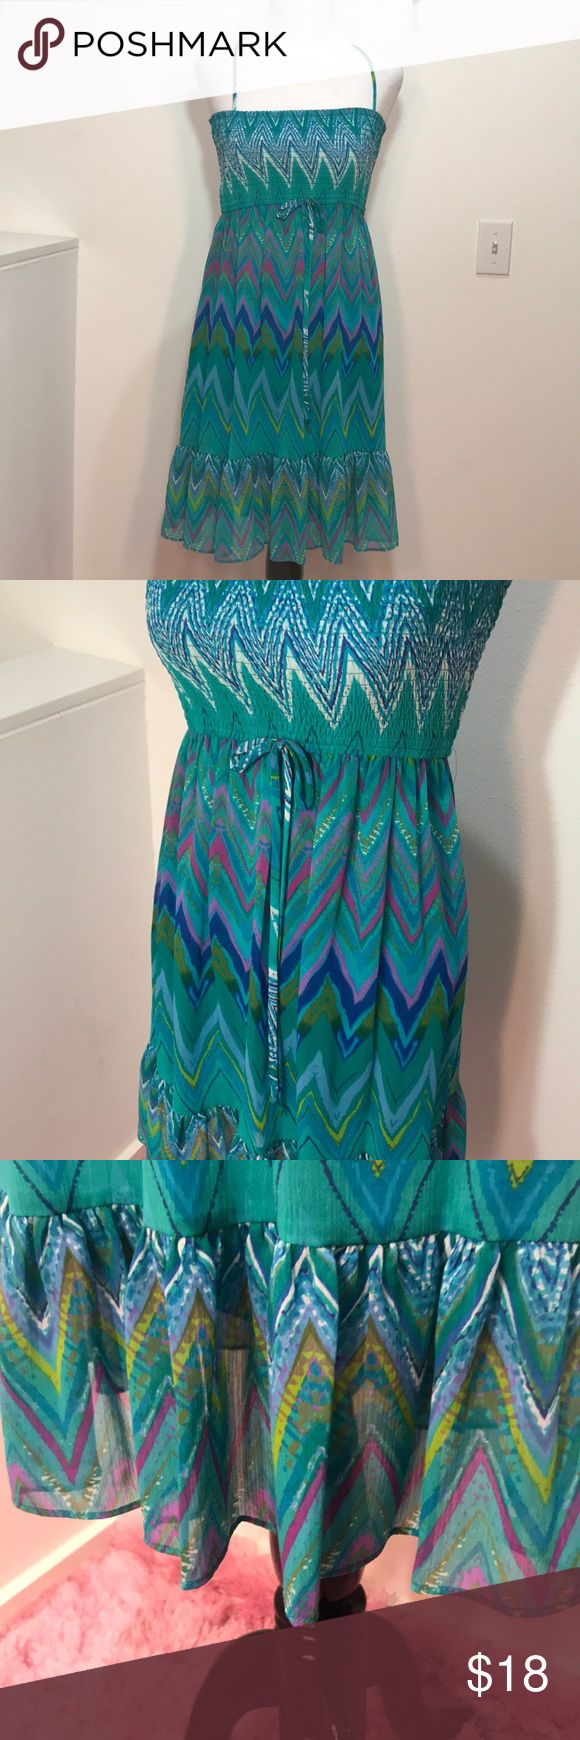 NWOT City Triangles Chevron Print Dress NWOT Adorable City Triangles dress with bright fun chevron print. Bust is smocked, so it could fit a variety of sizes. Straps can easily be tucked in to wear as a strapless style. Although it's a juniors size it could definitely fit a women's small or extra small City Triangles Dresses